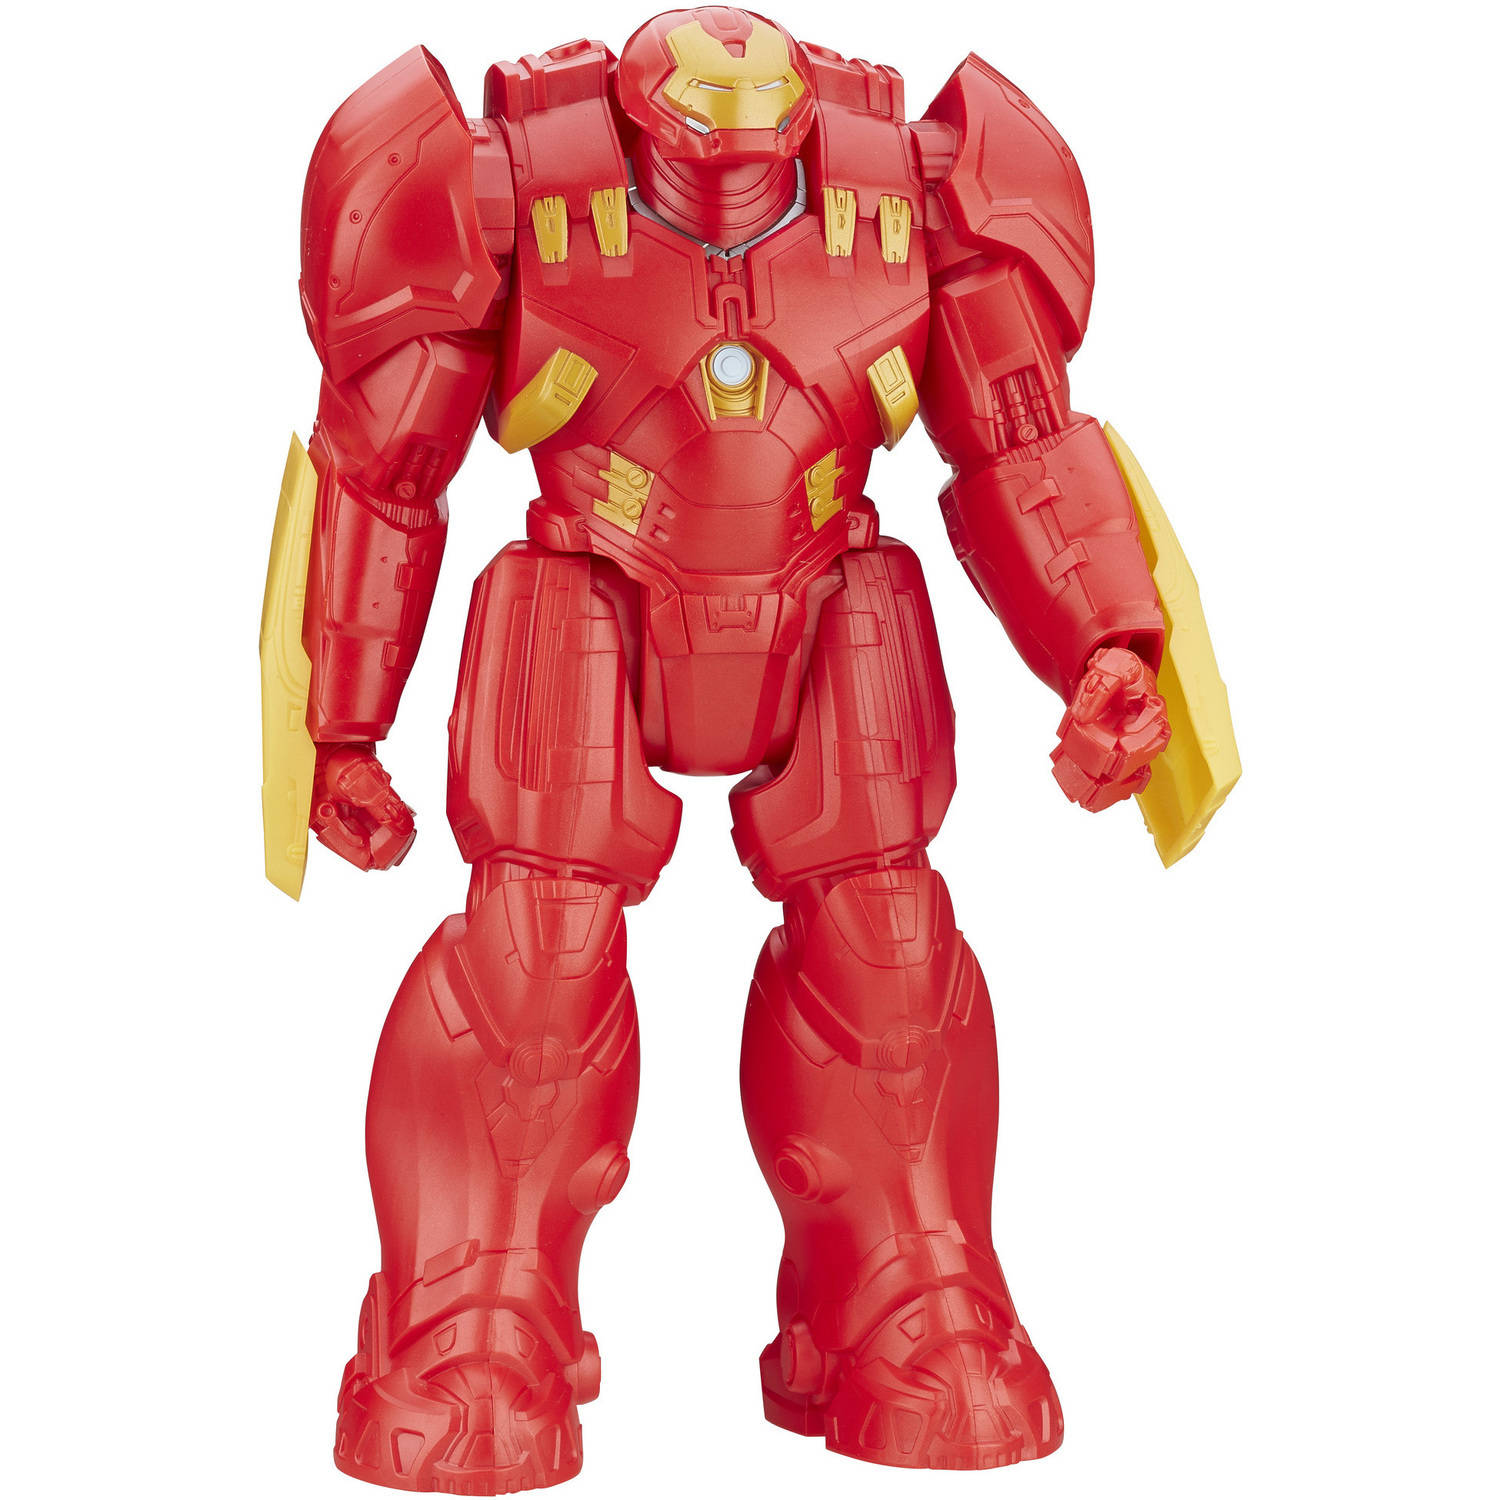 Marvel Titan Hero Series Hulkbuster Action Figure Avengers